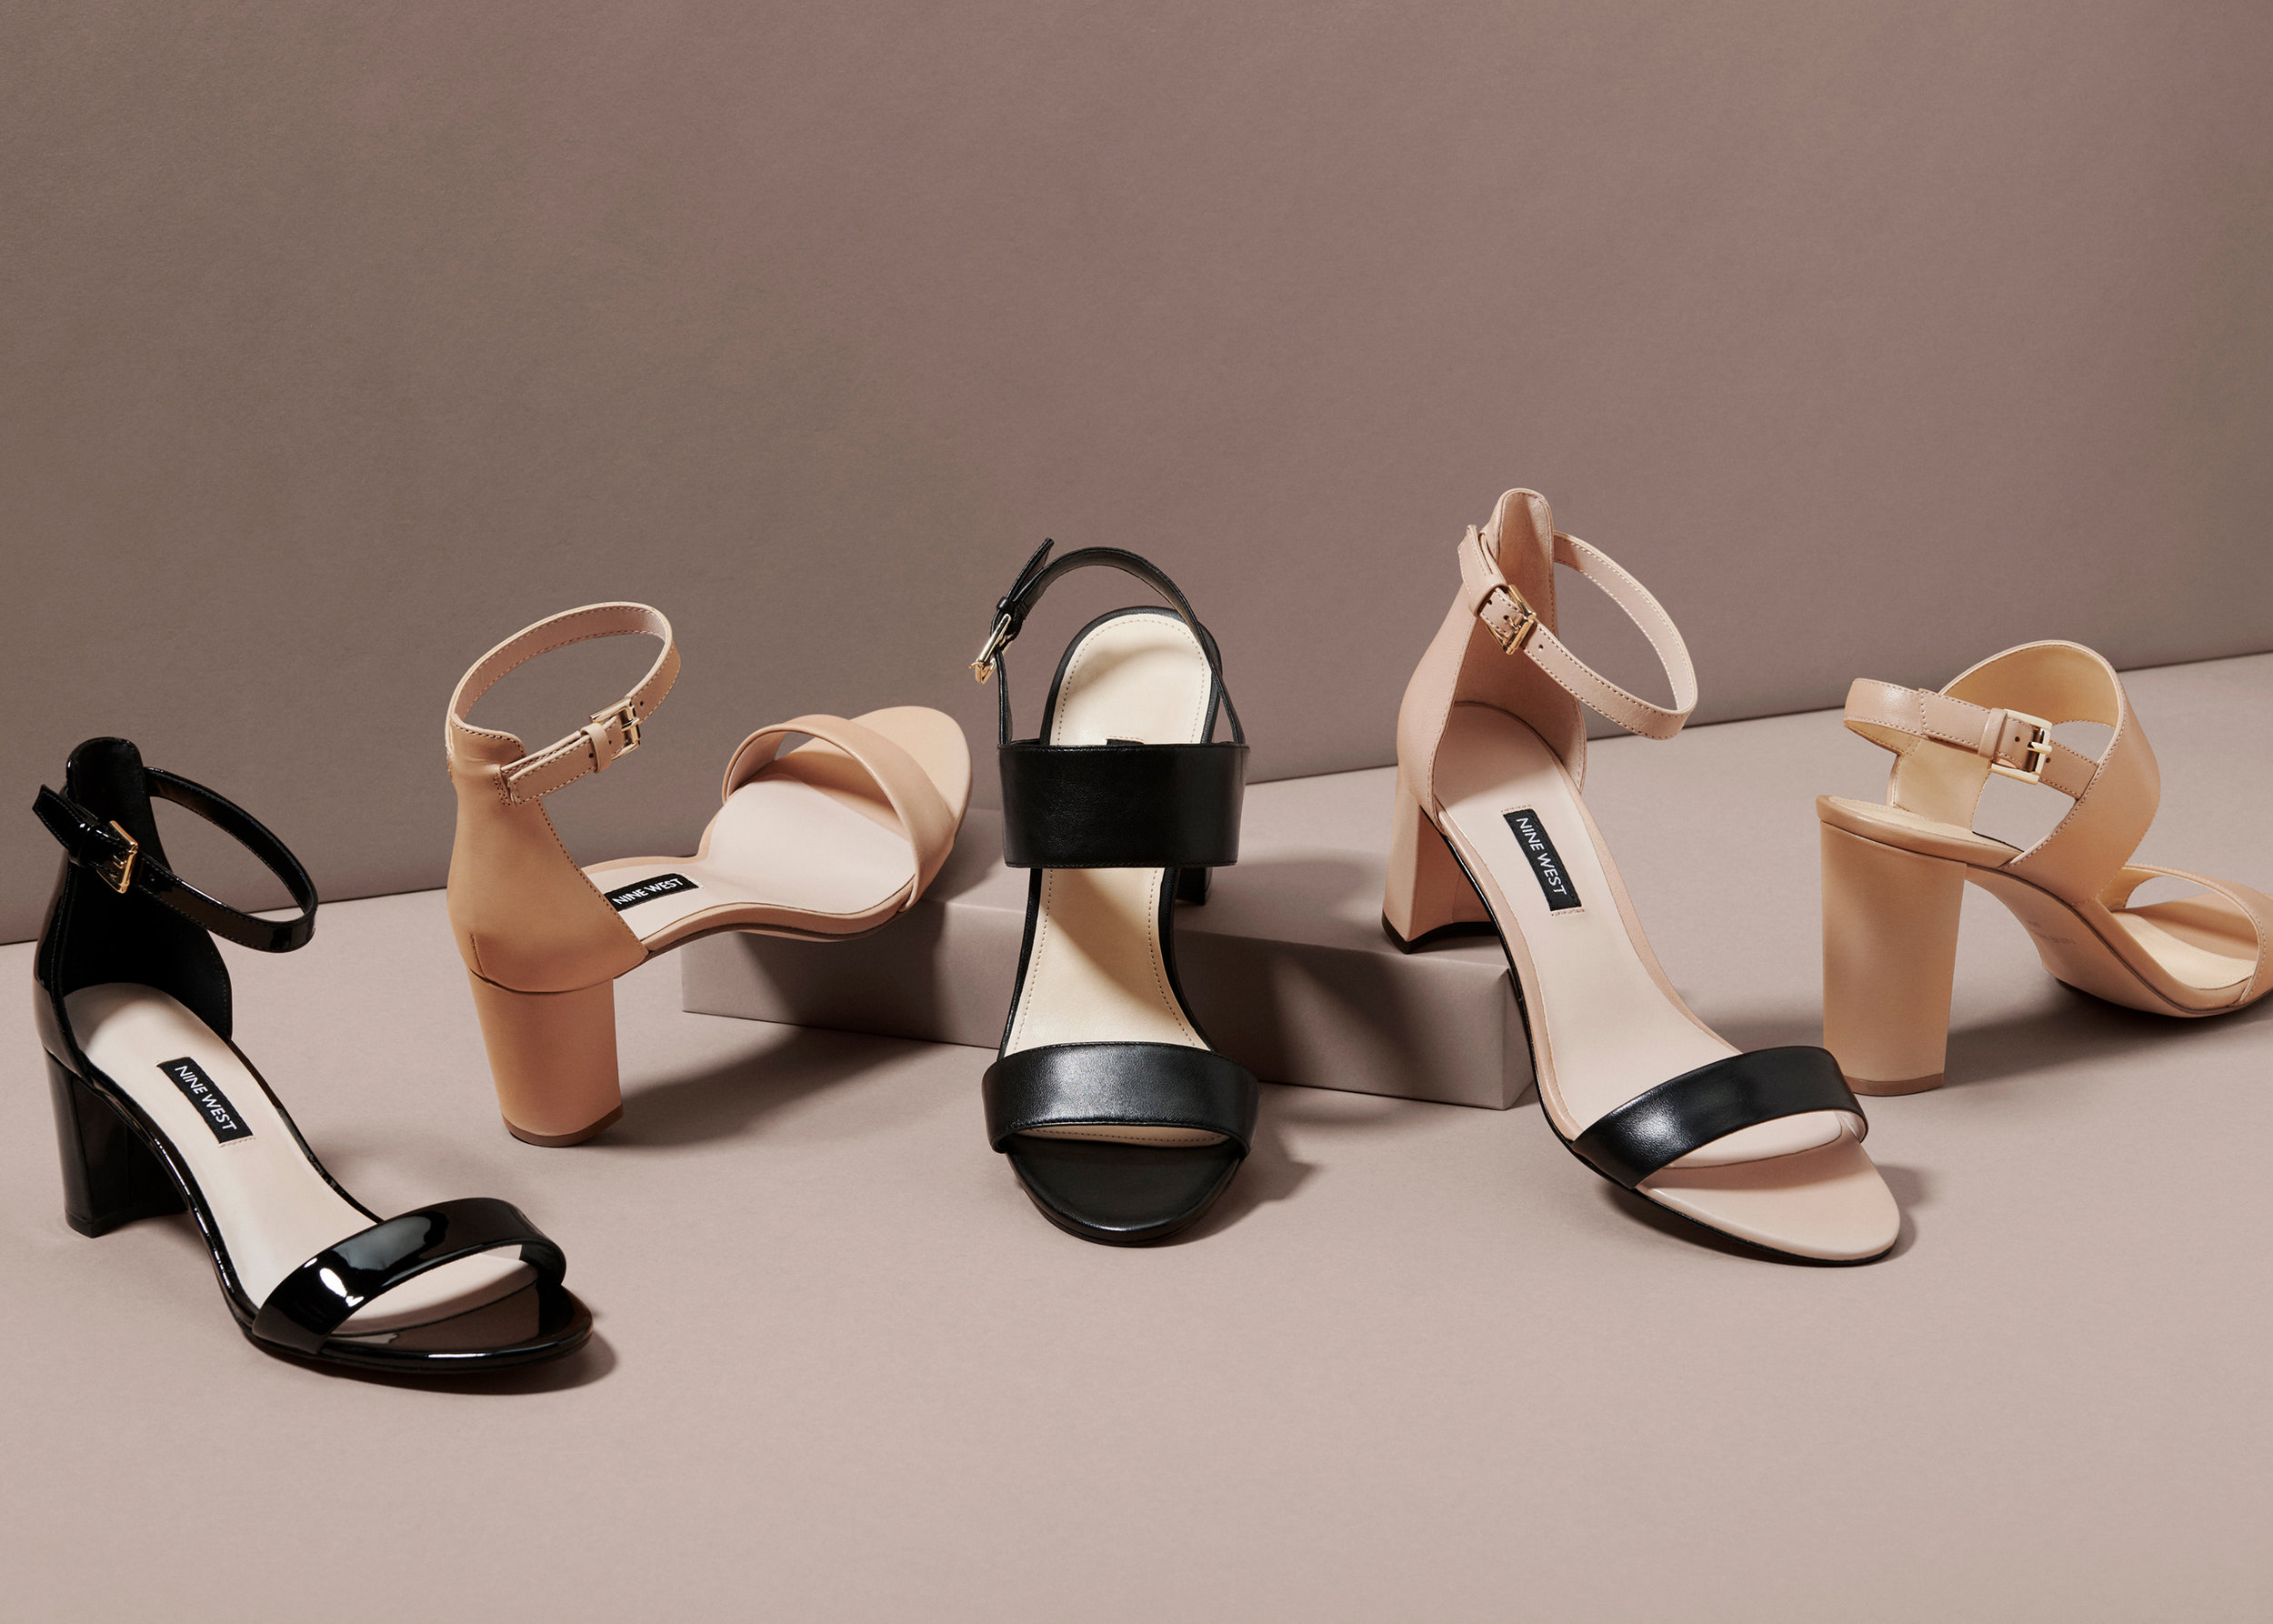 NINE WEST STILL LIFE